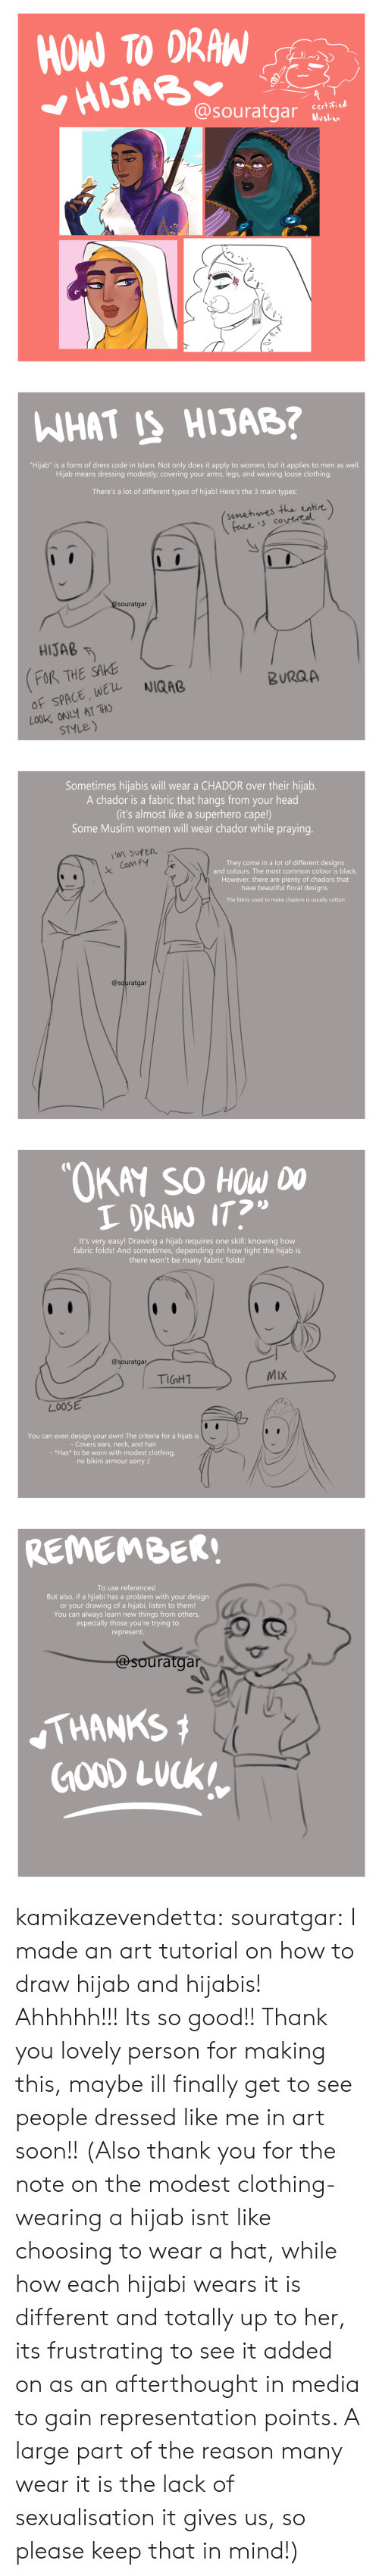 "Muslim: HOW TO DRAW  HIJAB  @souratgar  certified  Muslim   WHAT IS HIJAB?  ""Hijab"" is a form of dress code in Islam. Not only does it apply to women, but it applies to men as well.  Hijab means dressing modestly; covering your arms, legs, and wearing loose clothing.  There's a lot of different types of hijab! Here's the 3 main types:  (somehimes the entire)  face is covereel  @Souratgar  HIJAB  FOR THE SAKE  OF SPACE, WEL  LOOK ONLY AT THO  STYLE)  NIQAB  BURQA   Sometimes hijabis will wear a CHADOR over their hijab.  A chador is a fabric that hangs from your head  (it's almost like a superhero cape!)  Some Muslim women will wear chador while praying.  M SUPER  They come in a lot of different designs  and colours. The most common colour is black.  Com FY  However, there are plenty of chadors that  have beautiful floral designs.  The fabric used to make chadors is usually cotton.  @souratgar   ""OKAY SO HOW DO  I DRAN IT?  It's very easy! Drawing a hijab requi res one skill: knowing how  fabric folds! And sometimes, depending on how tight the hijab is  there won't be many fabric folds!  @souratgar  MIX  TIGHT  LOOSE  You can even design your own! The criteria for a hijab is  - Covers ears, neck, and hair  - *Has* to be worn with modest clothing,  no bikini armour sorry :(   REMEMBER!  To use references!  But also, if a hijiabi has a problem with your design  or your drawing of a hijabi, listen to them!  You can always learn new things from others,  especially those you're trying to  represent.  @souratgar  THANKS  GOOD LUCK kamikazevendetta:  souratgar: I made an art tutorial on how to draw hijab and hijabis! Ahhhhh!!! Its so good!! Thank you lovely person for making this, maybe ill finally get to see people dressed like me in art soon!!   (Also thank you for the note on the modest clothing- wearing a hijab isnt like choosing to wear a hat, while how each hijabi wears it is different and totally up to her, its frustrating to see it added on as an afterthought in media to gain representation points. A large part of the reason many wear it is the lack of sexualisation it gives us, so please keep that in mind!)"